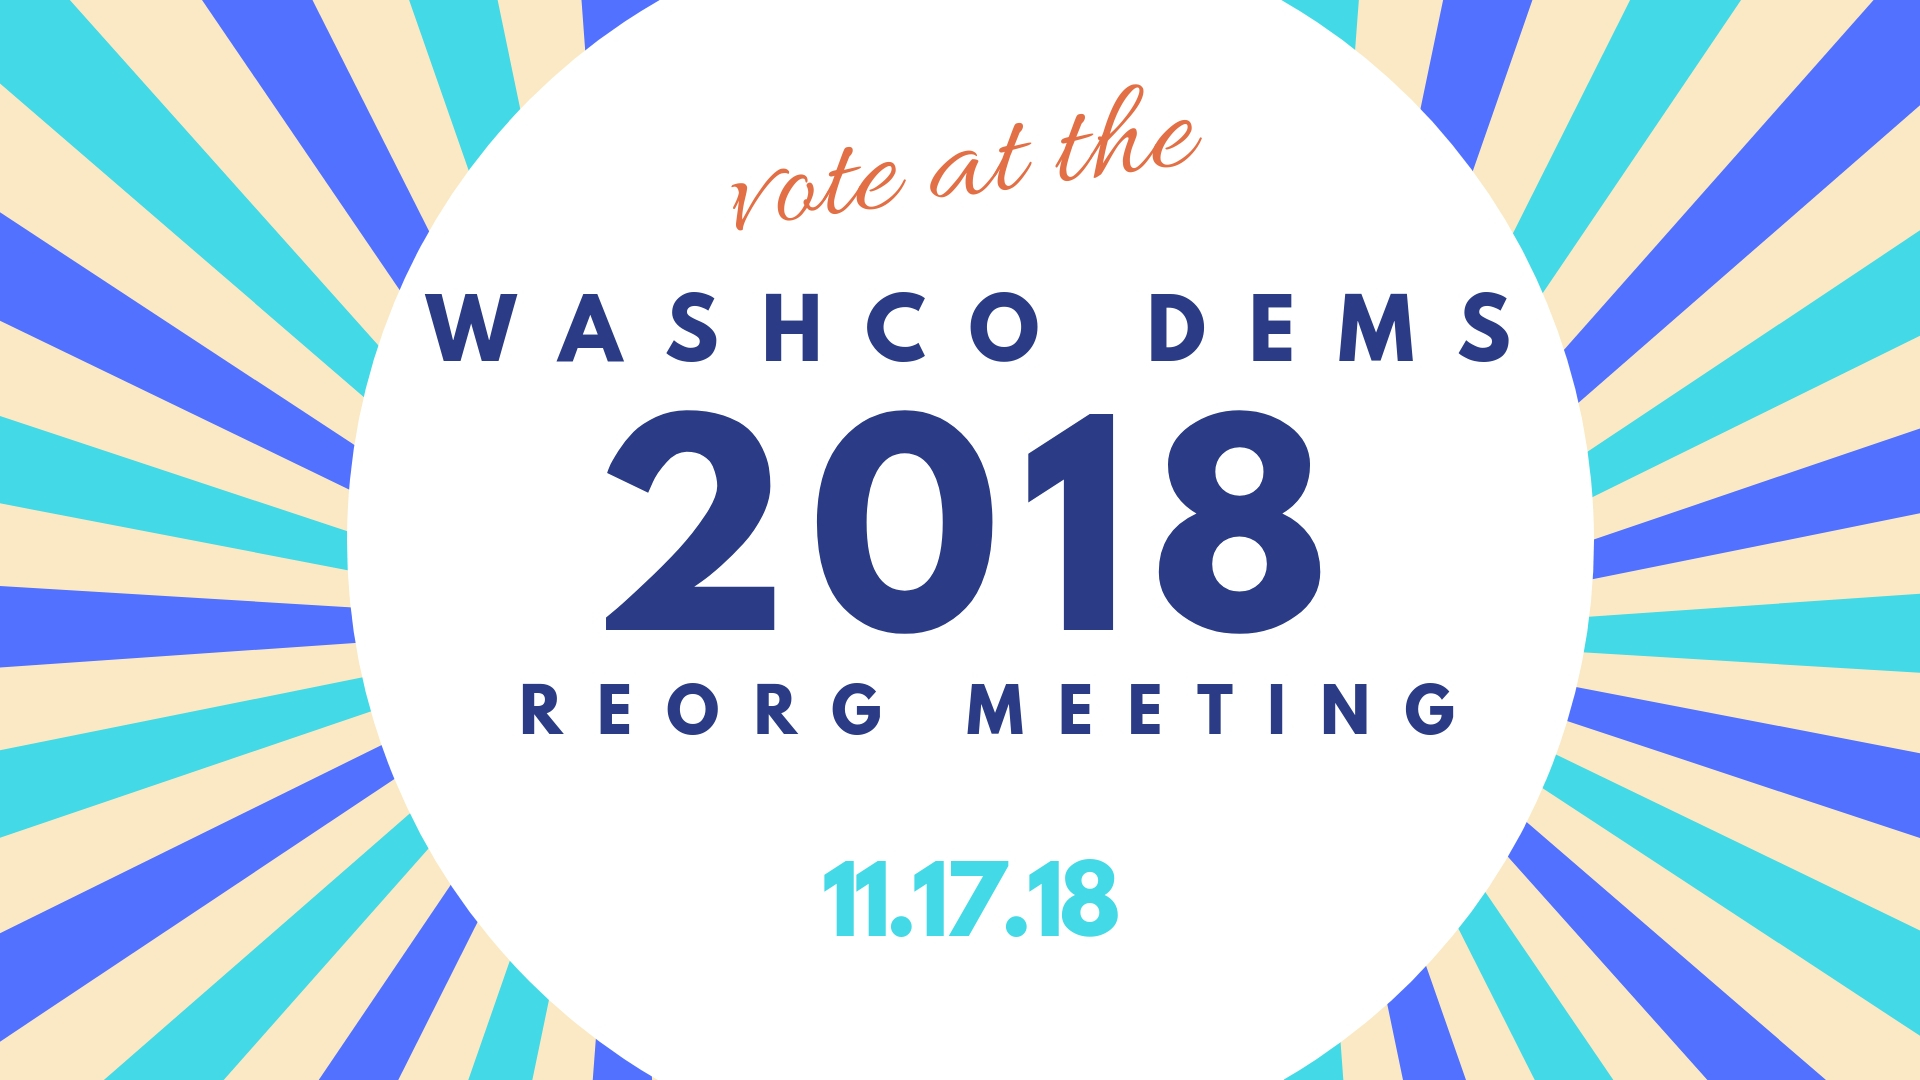 WashCo Dems 2018 Organizational Meeting